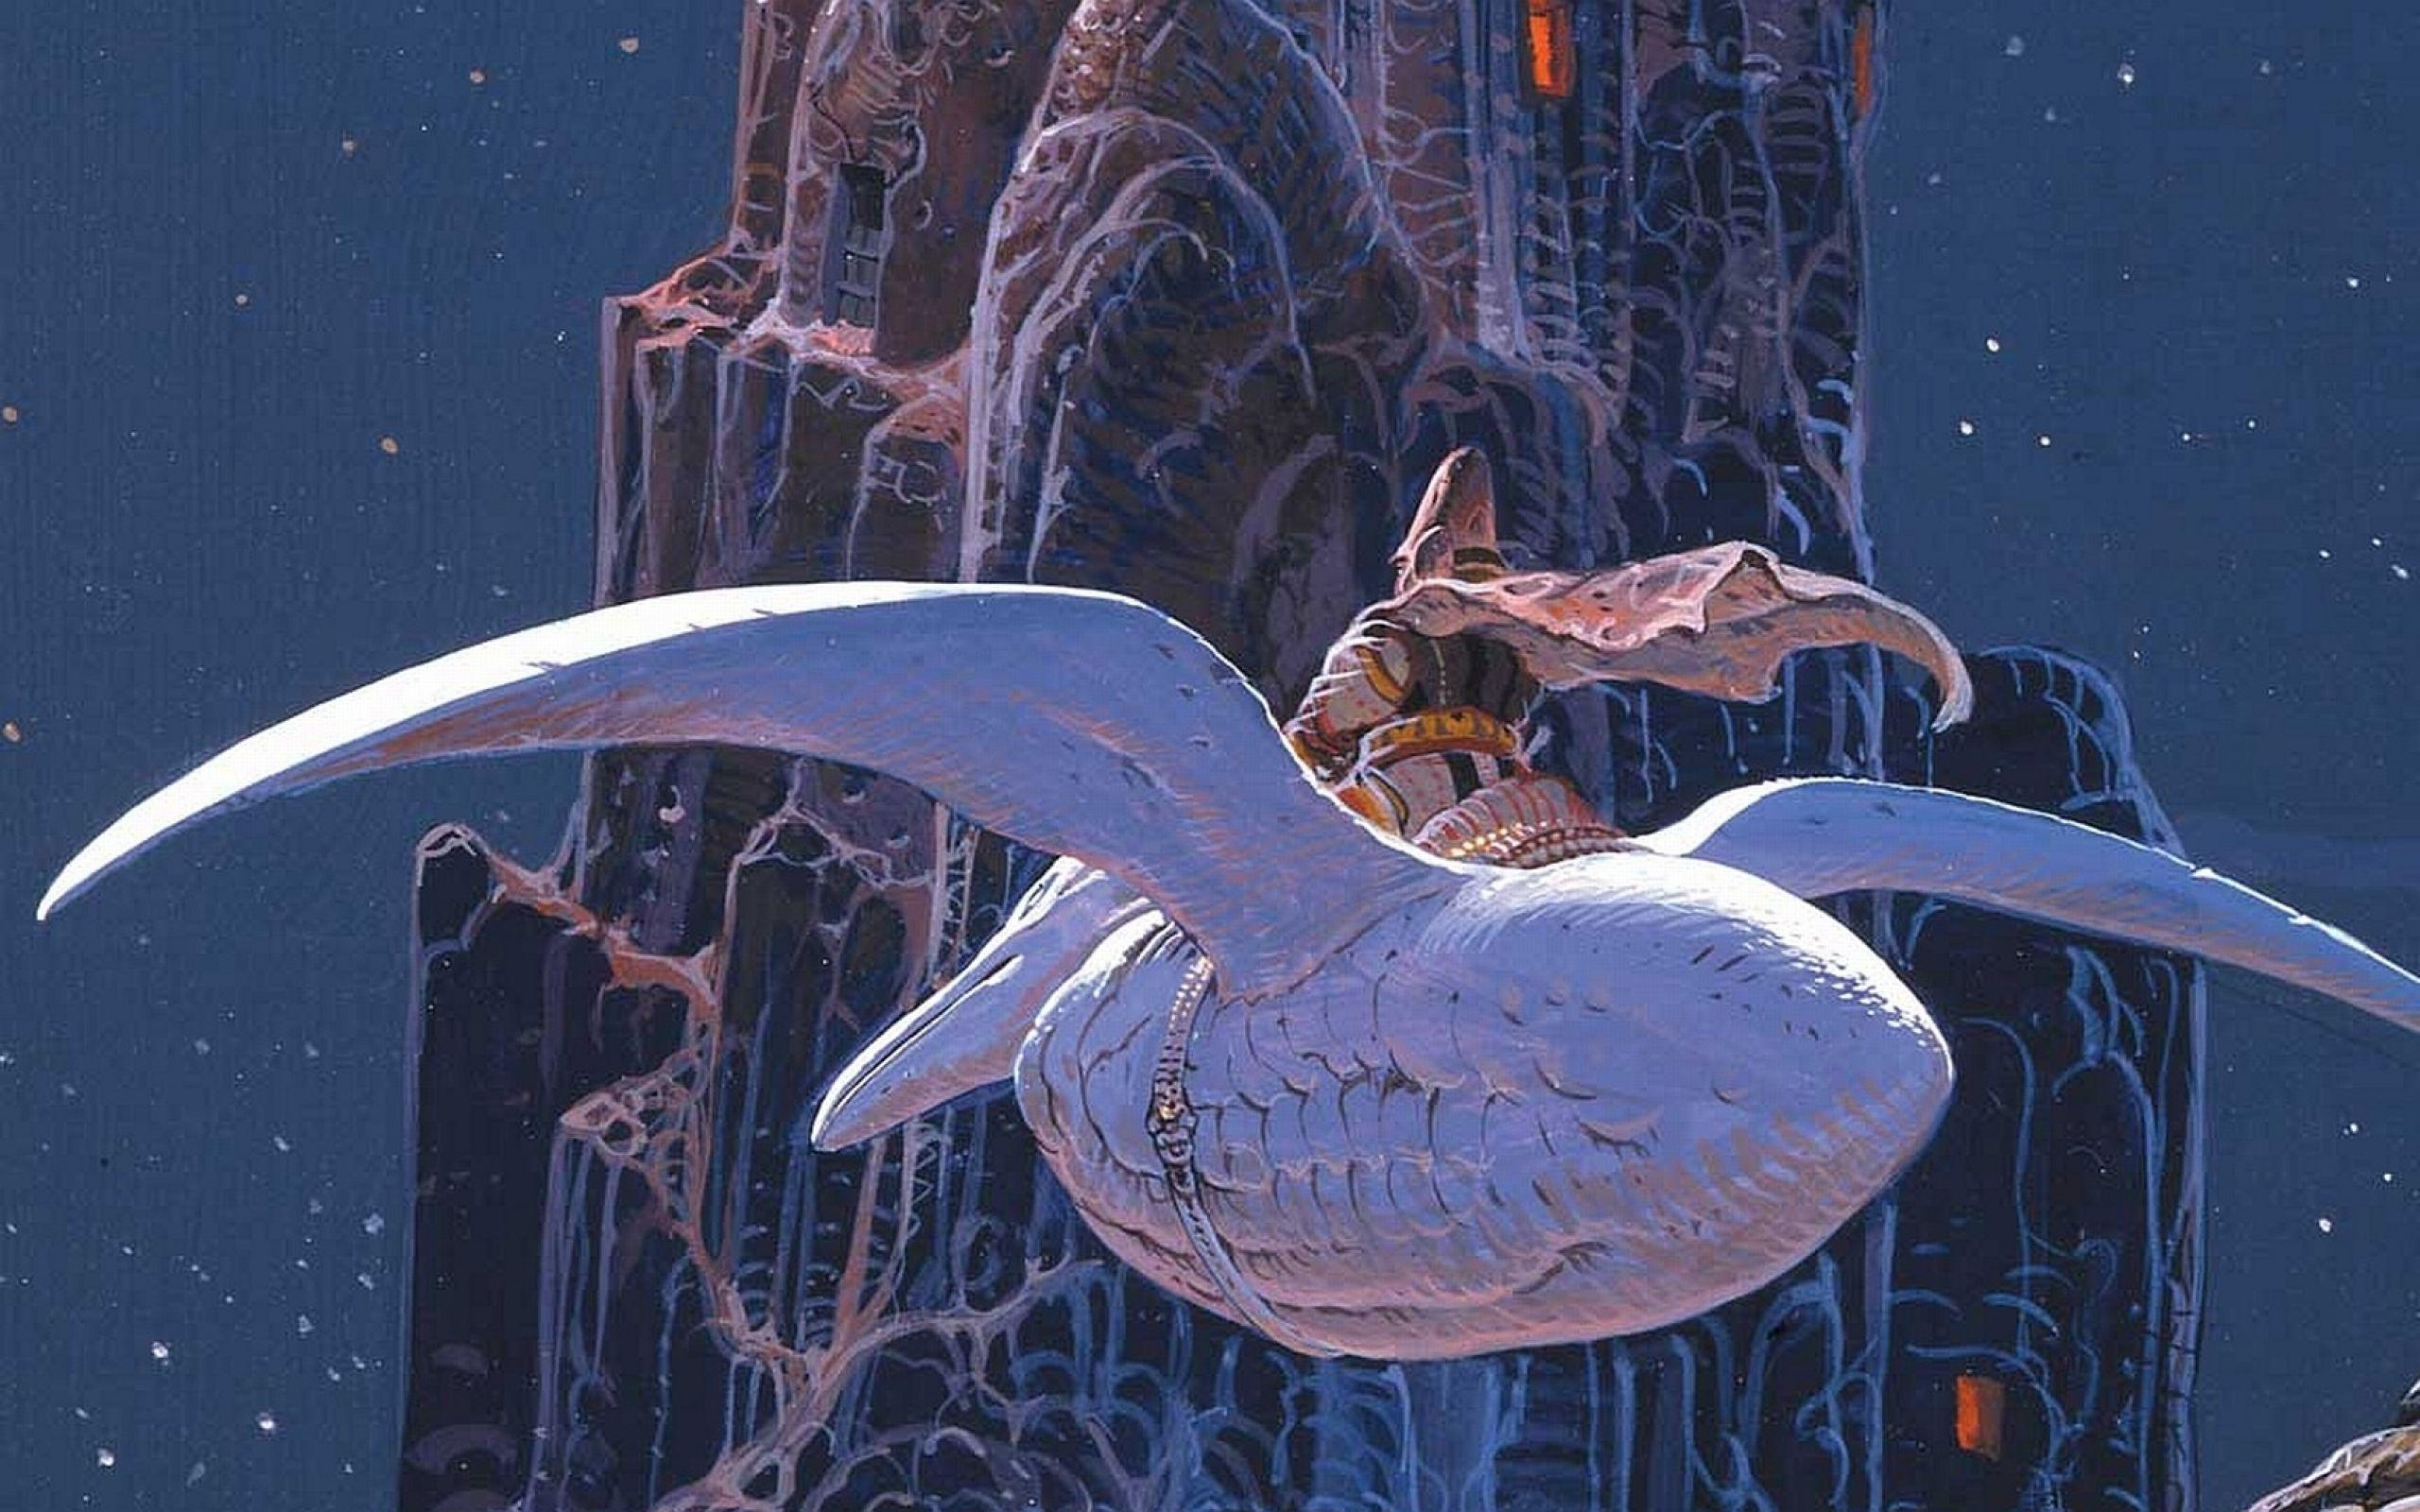 Moebius Wallpaper (64+), Find HD Wallpapers For Free